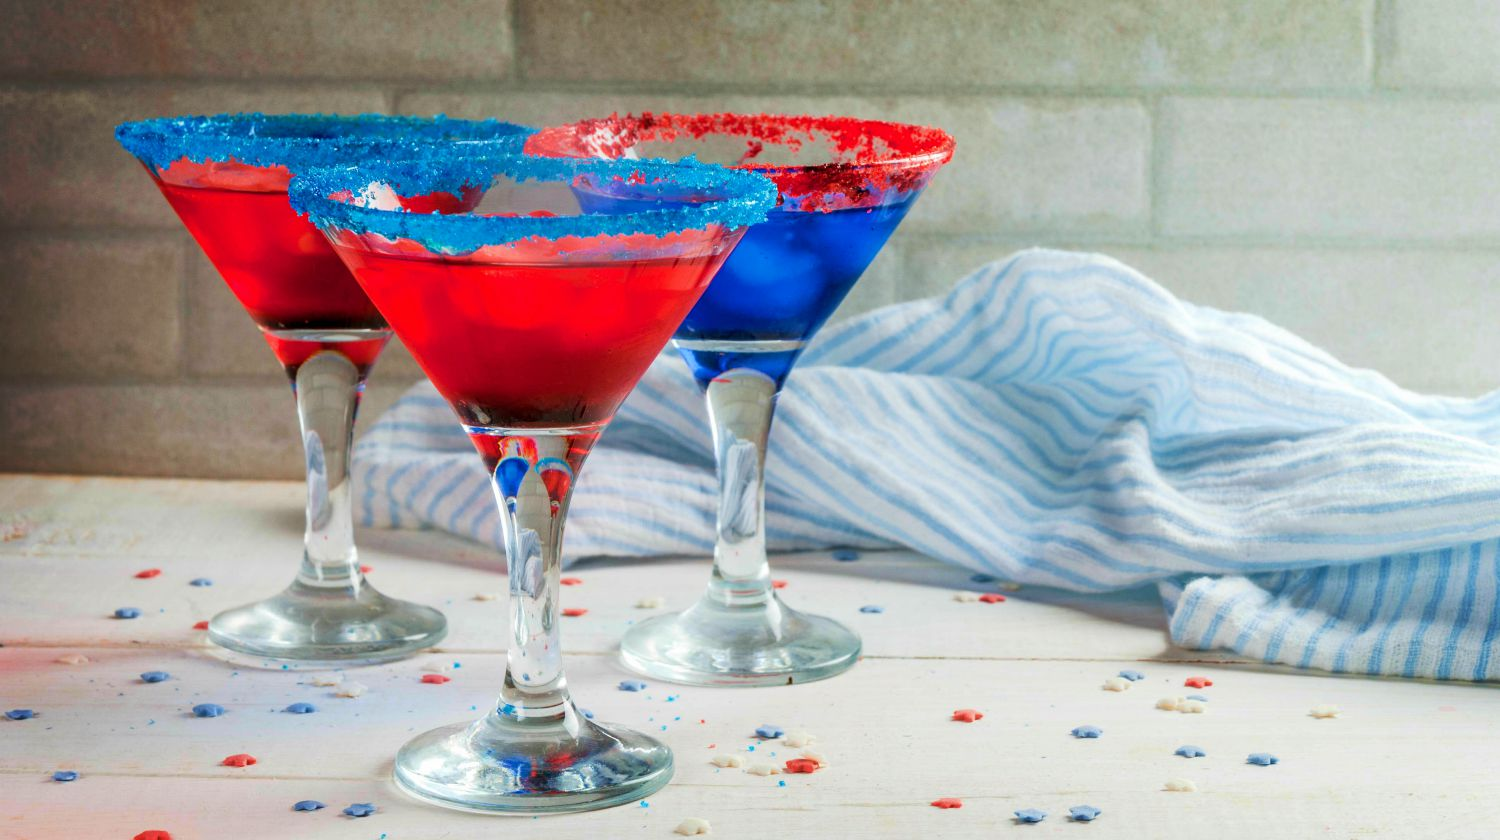 Diy Cocktails For 4th Of July Party Ideas Diy Projects